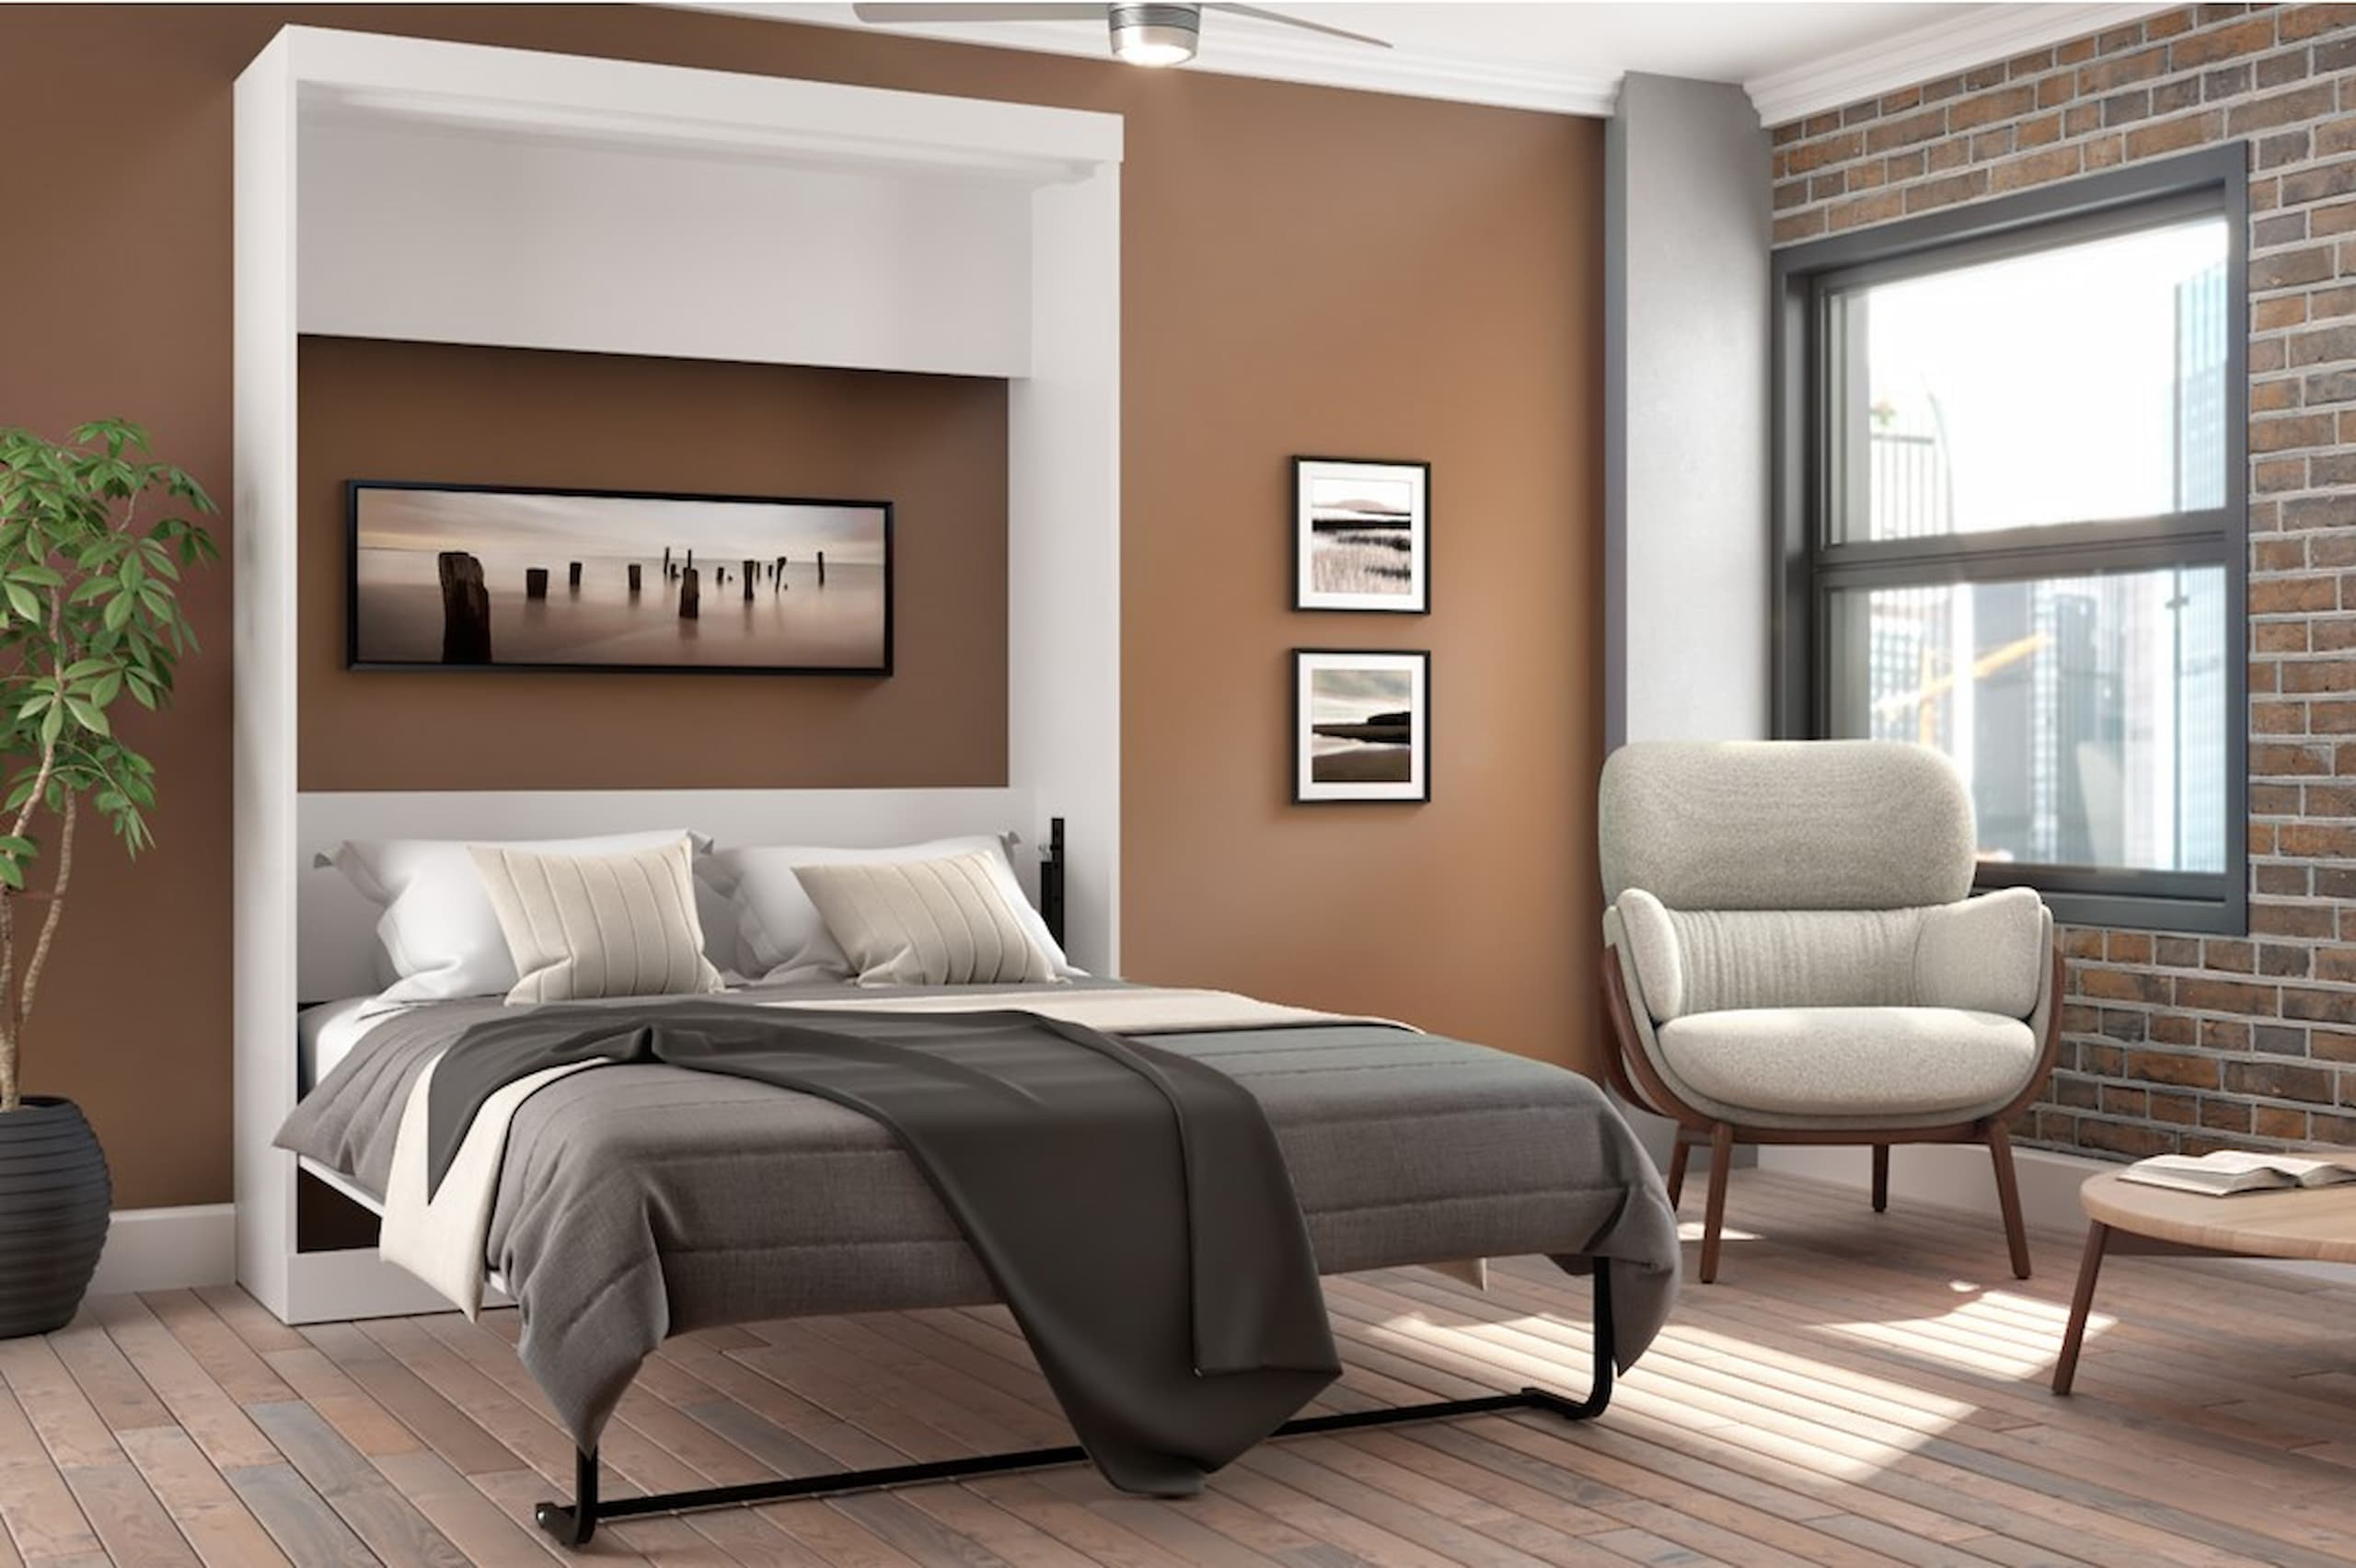 Create the Perfect Decor with the Right Wall Bed